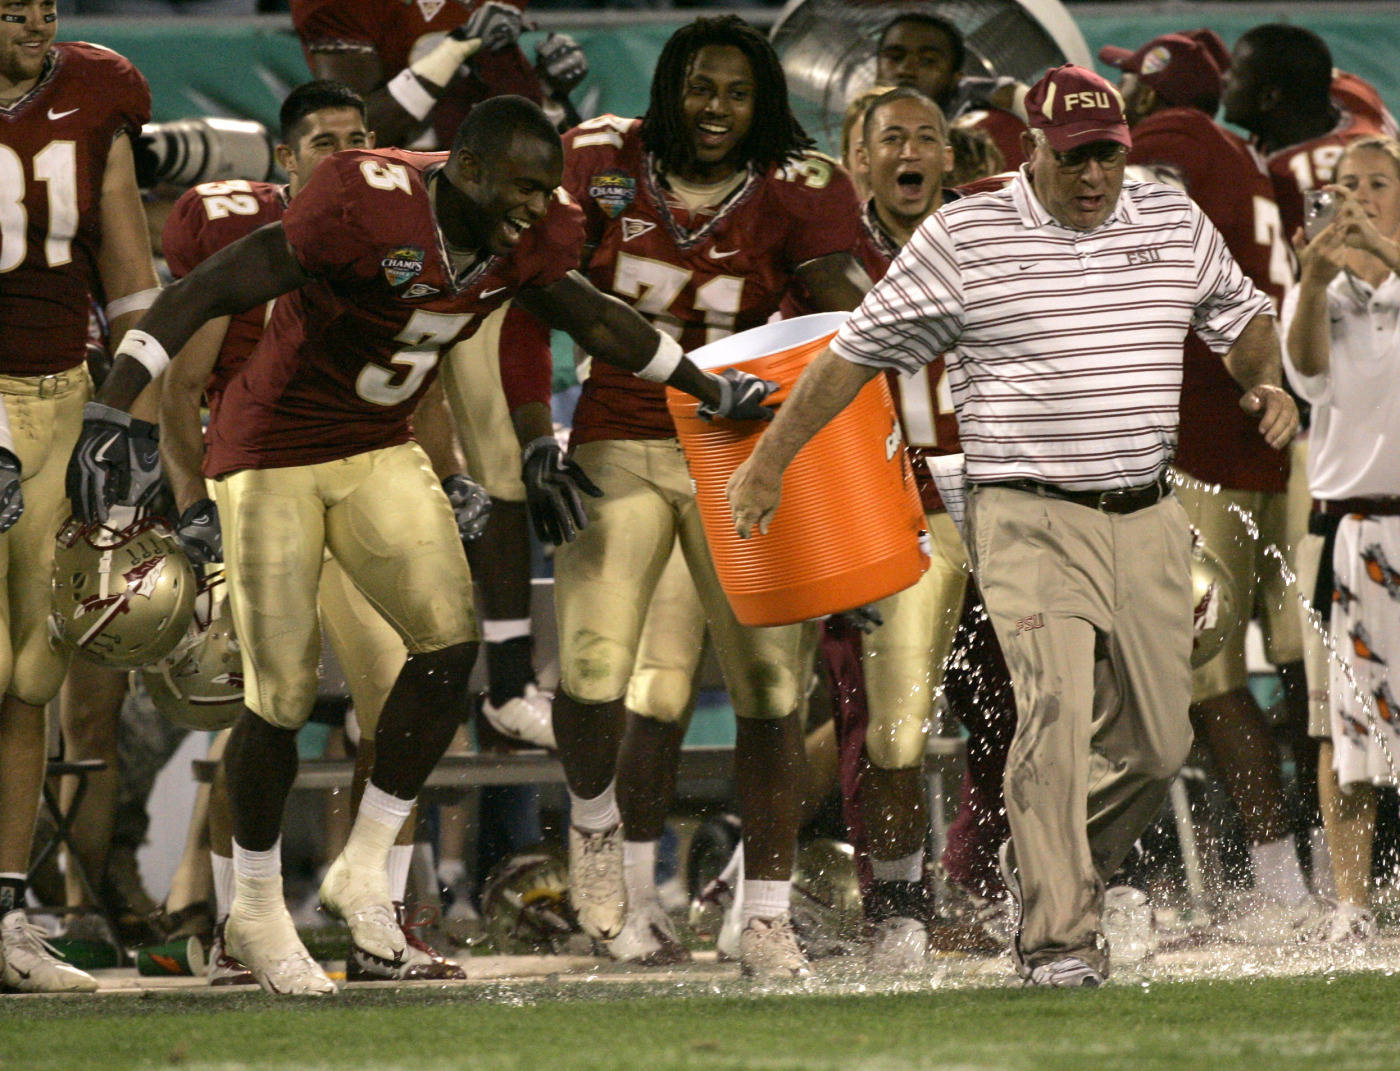 Florida State safety Myron Rolle (3), linebacker Toddrick Verdell (31) and teammates celebrate after dousing defensive coordinator Mickey Andrews, right, during the final moments of the Champs Sports Bowl. (AP Photo/John Raoux)